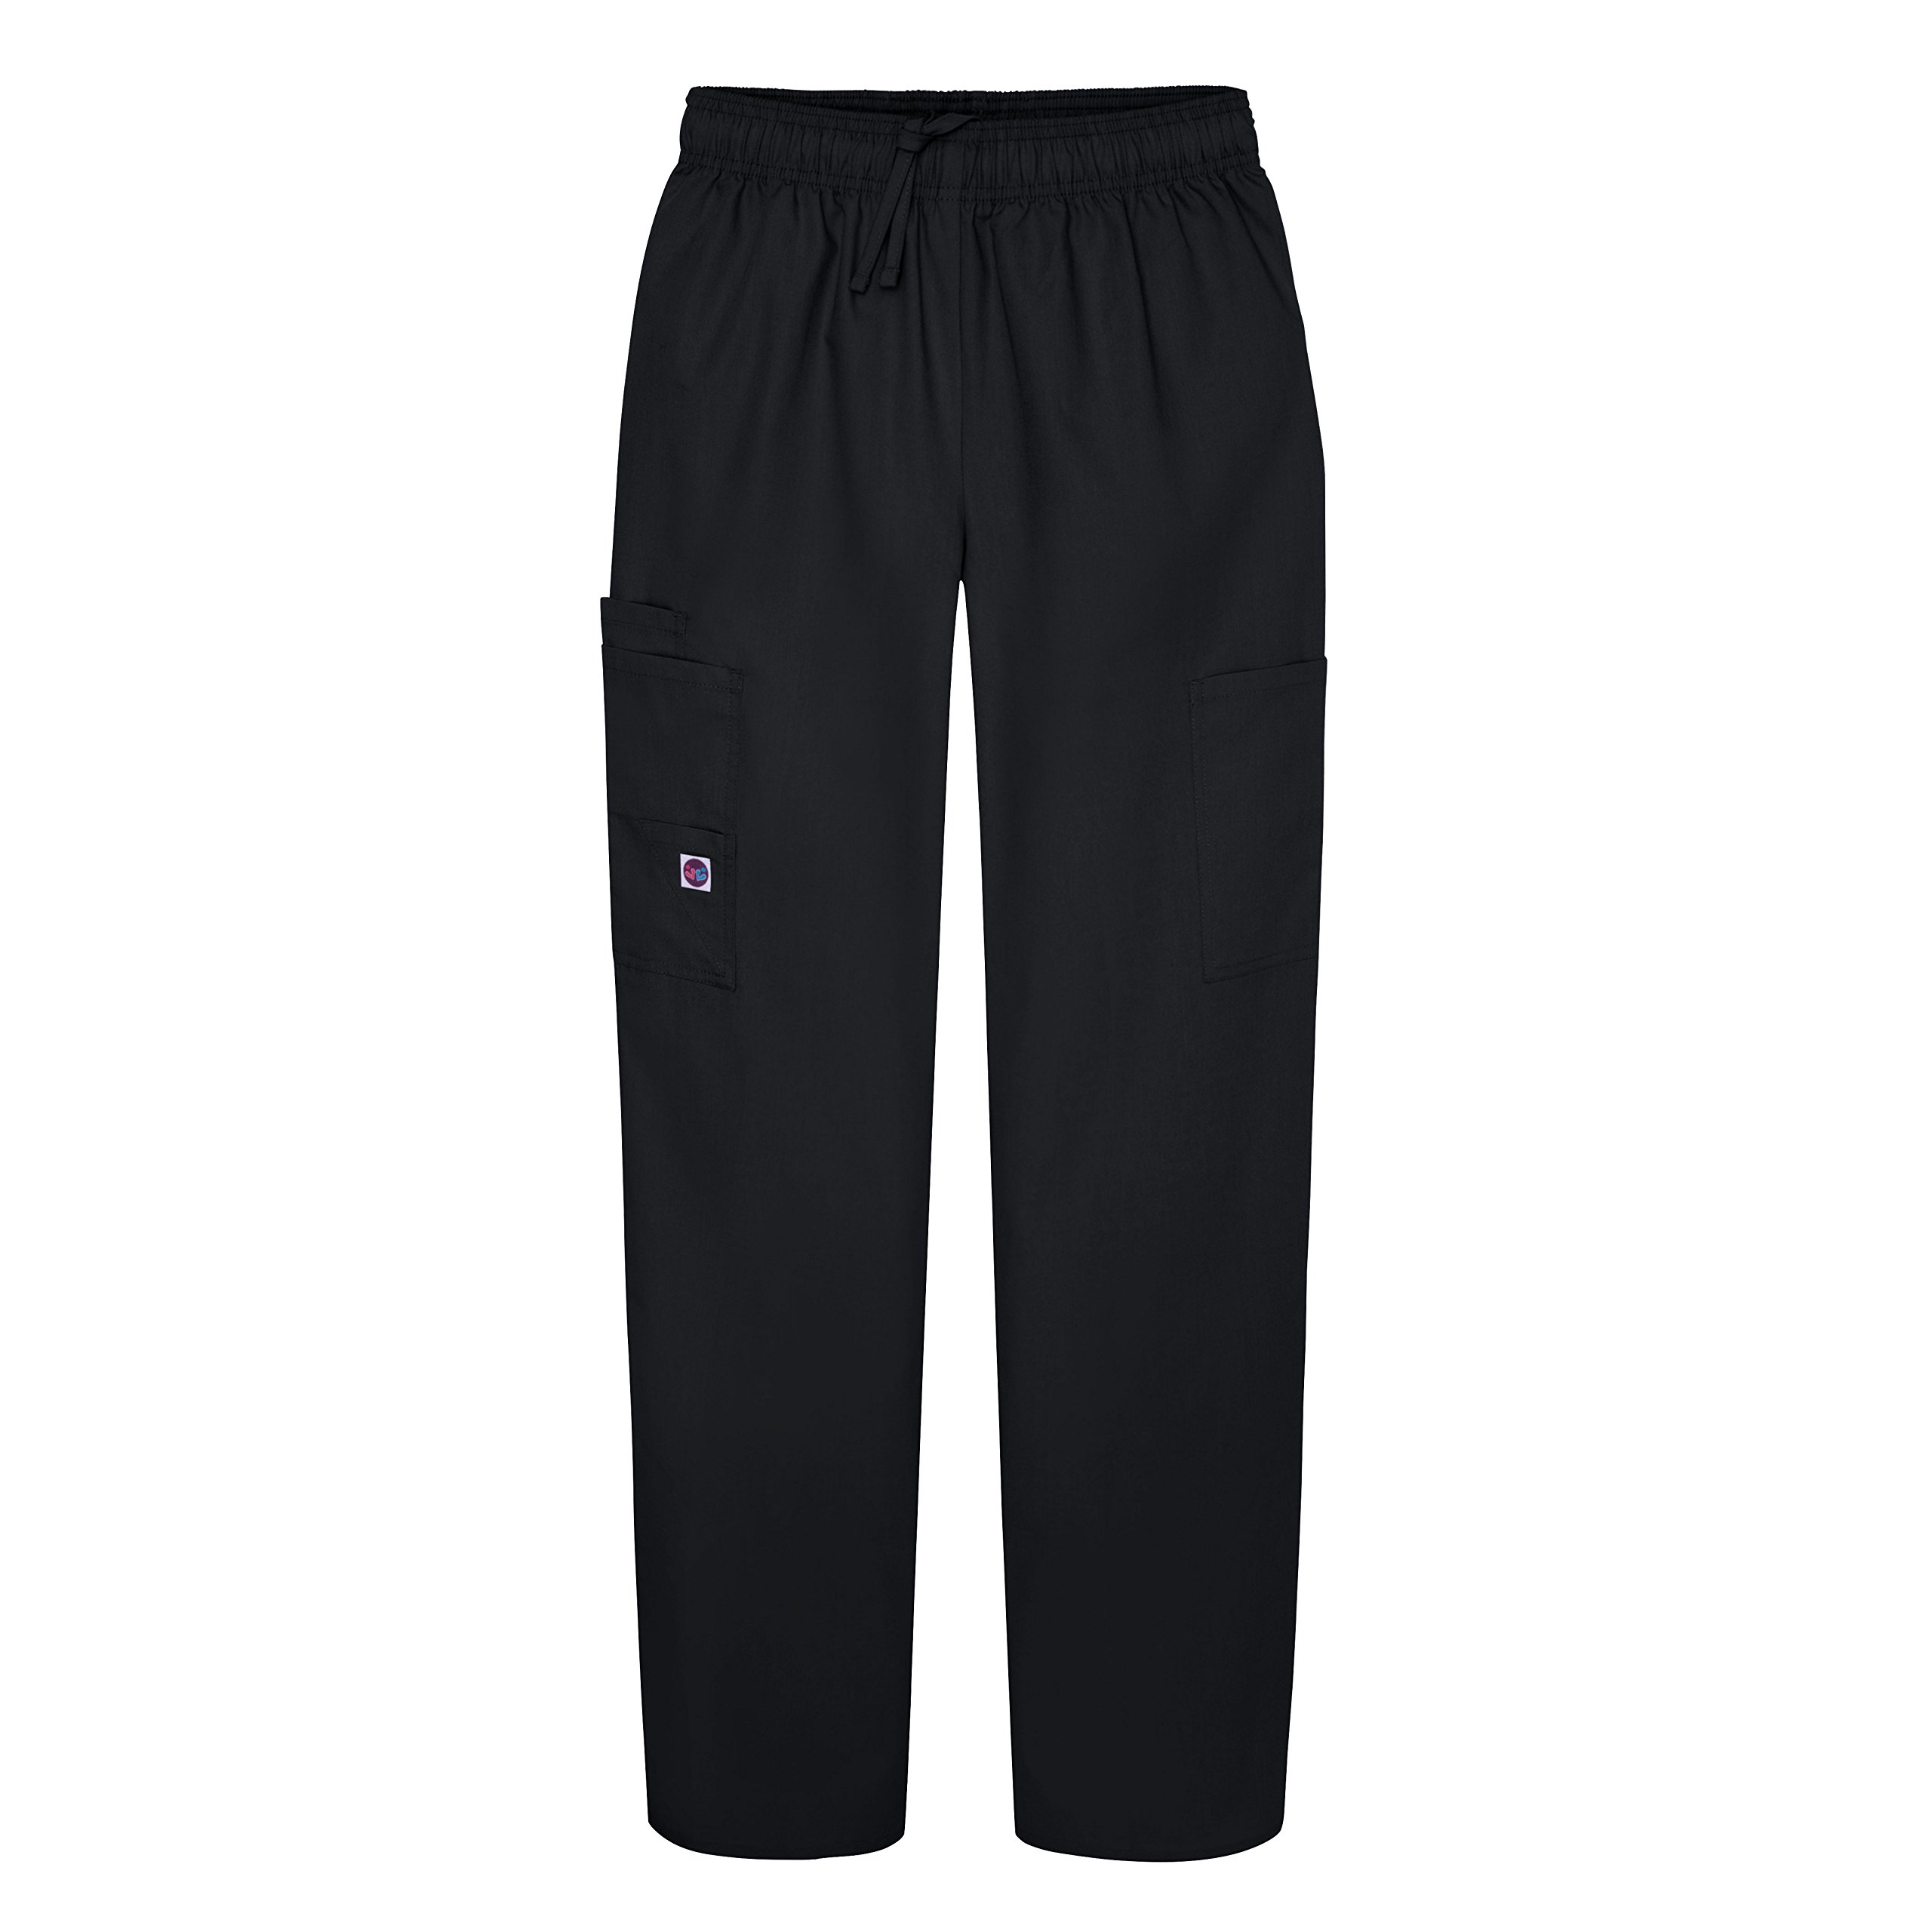 Sivvan Women's Scrubs Drawstring Cargo Pants (Available in 12 Colors) - S8200 - Black - 2X